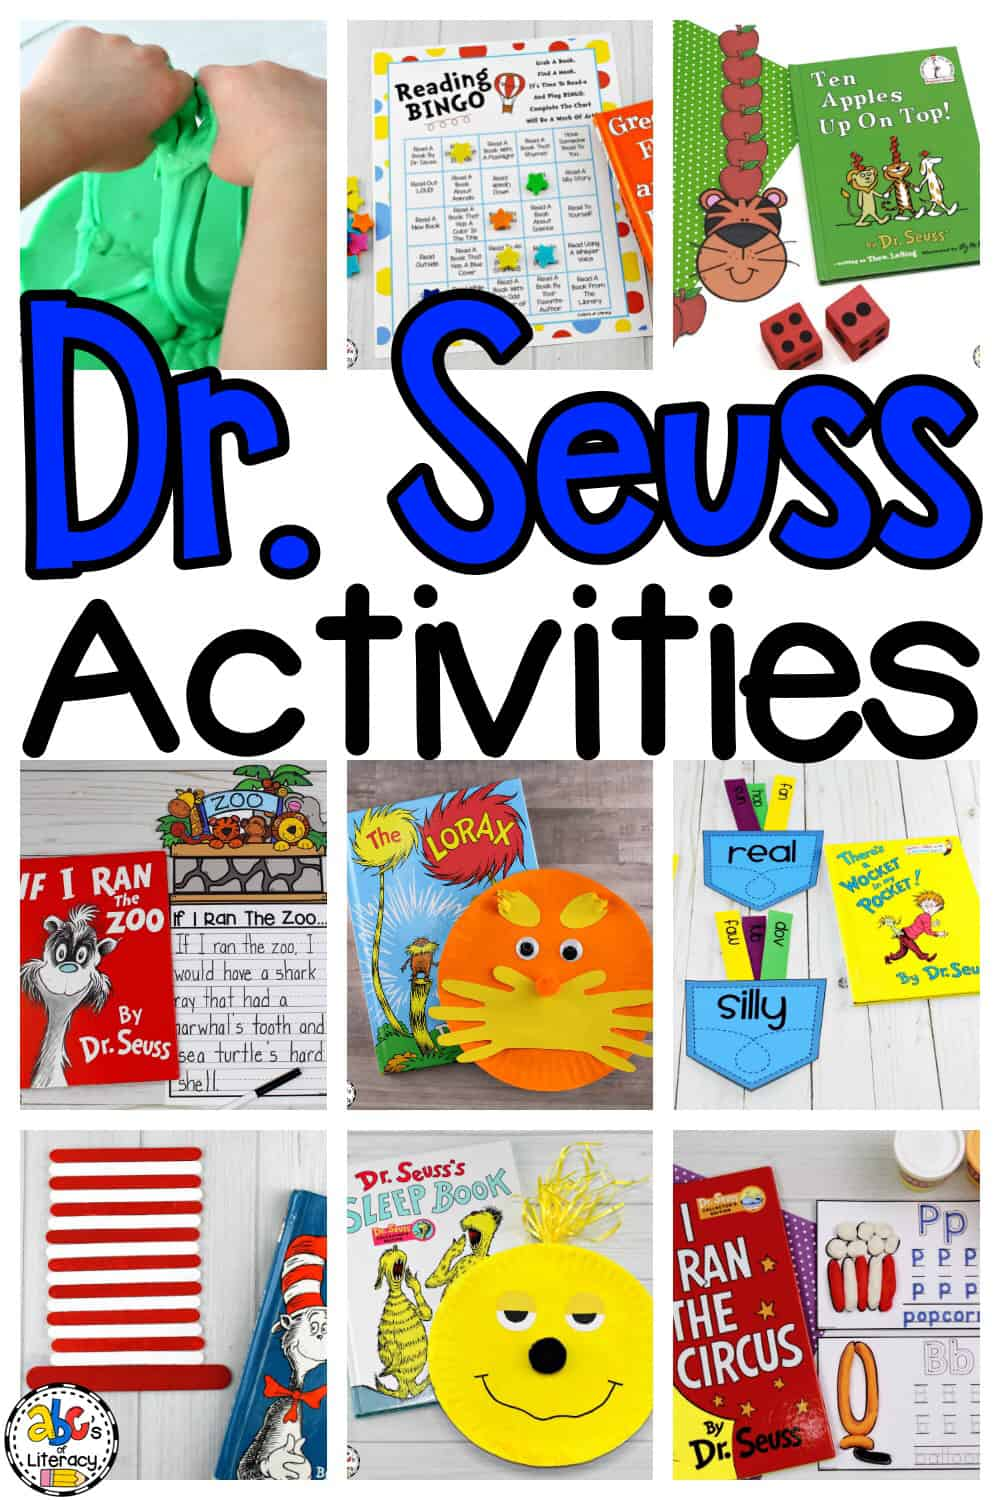 Dr. Seuss Activities for Kids